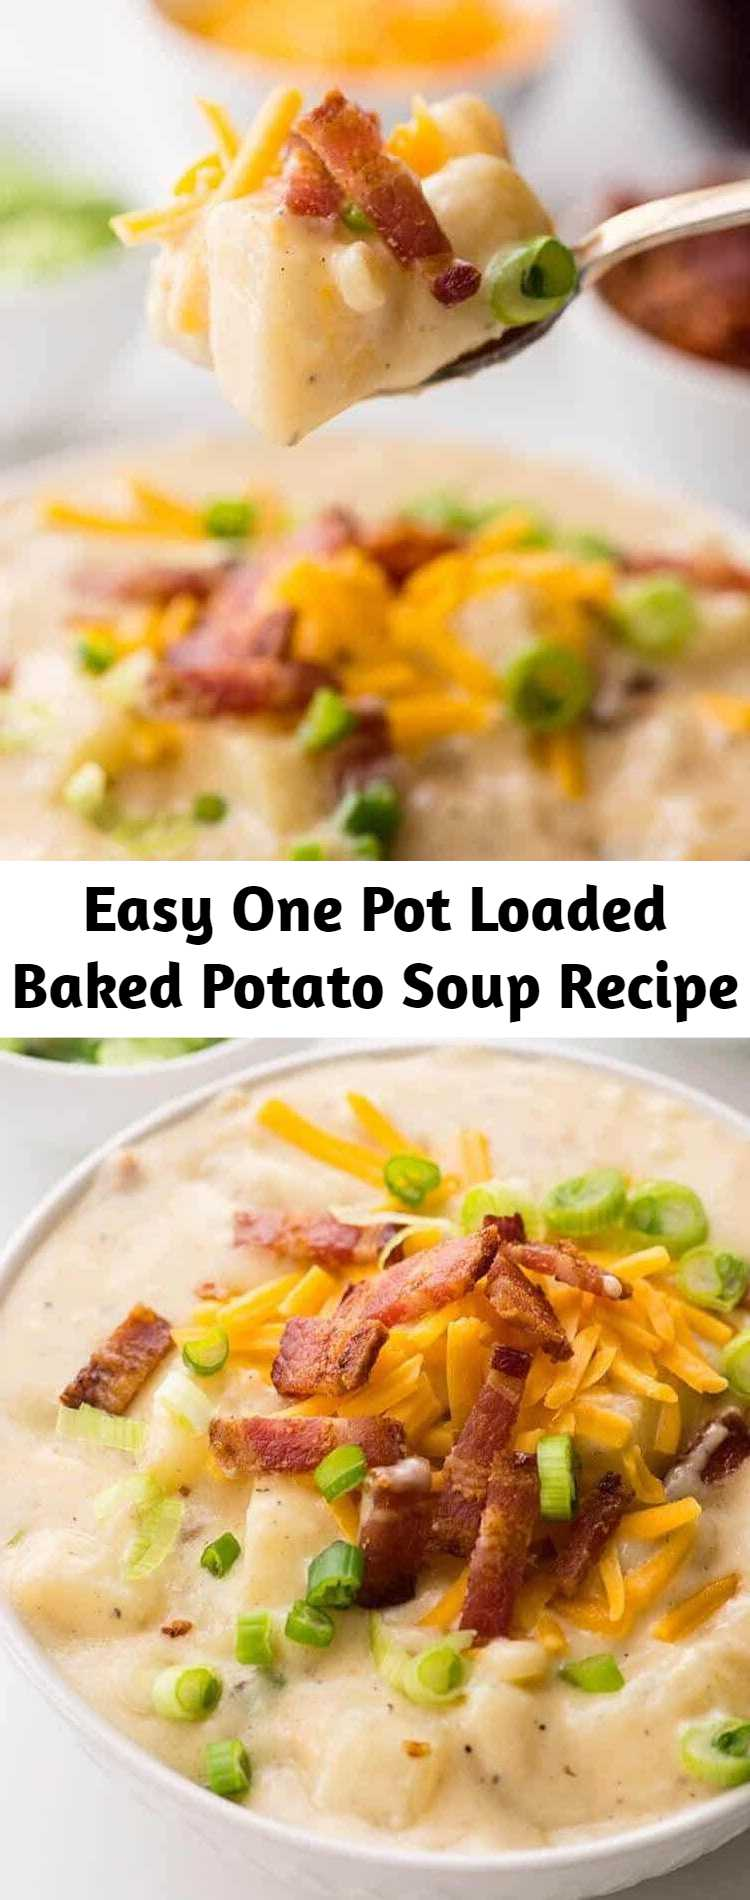 Easy One Pot Loaded Baked Potato Soup Recipe - This loaded baked potato soup recipe is so easy to make and it's all in one pot for easy clean up - it's rich, filling and tastes amazing - the perfect comfort food